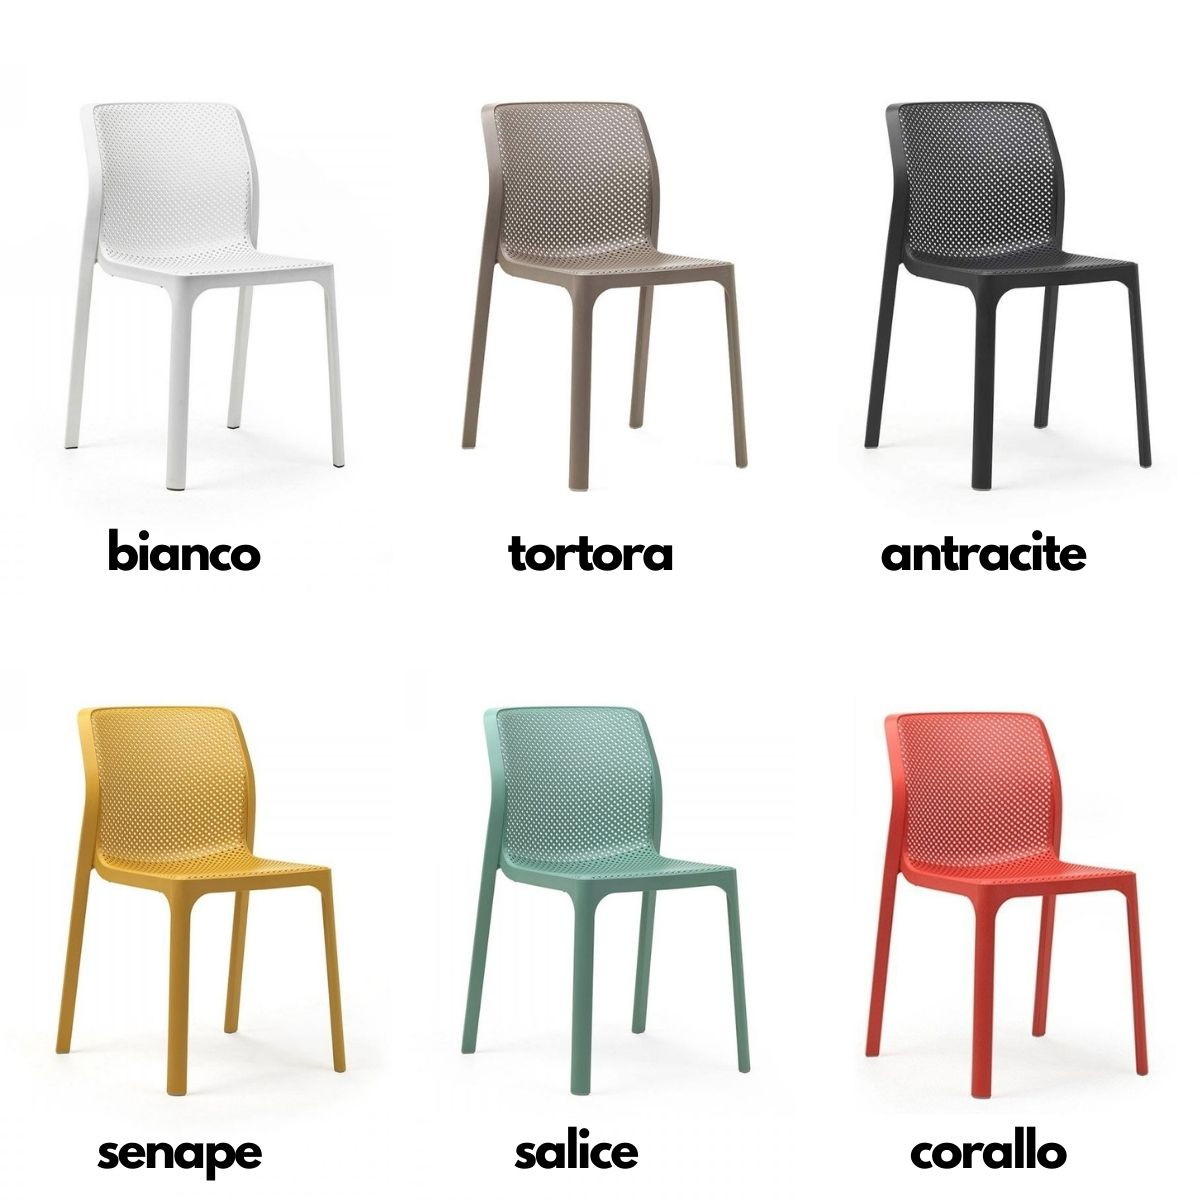 bit-chair-colors available